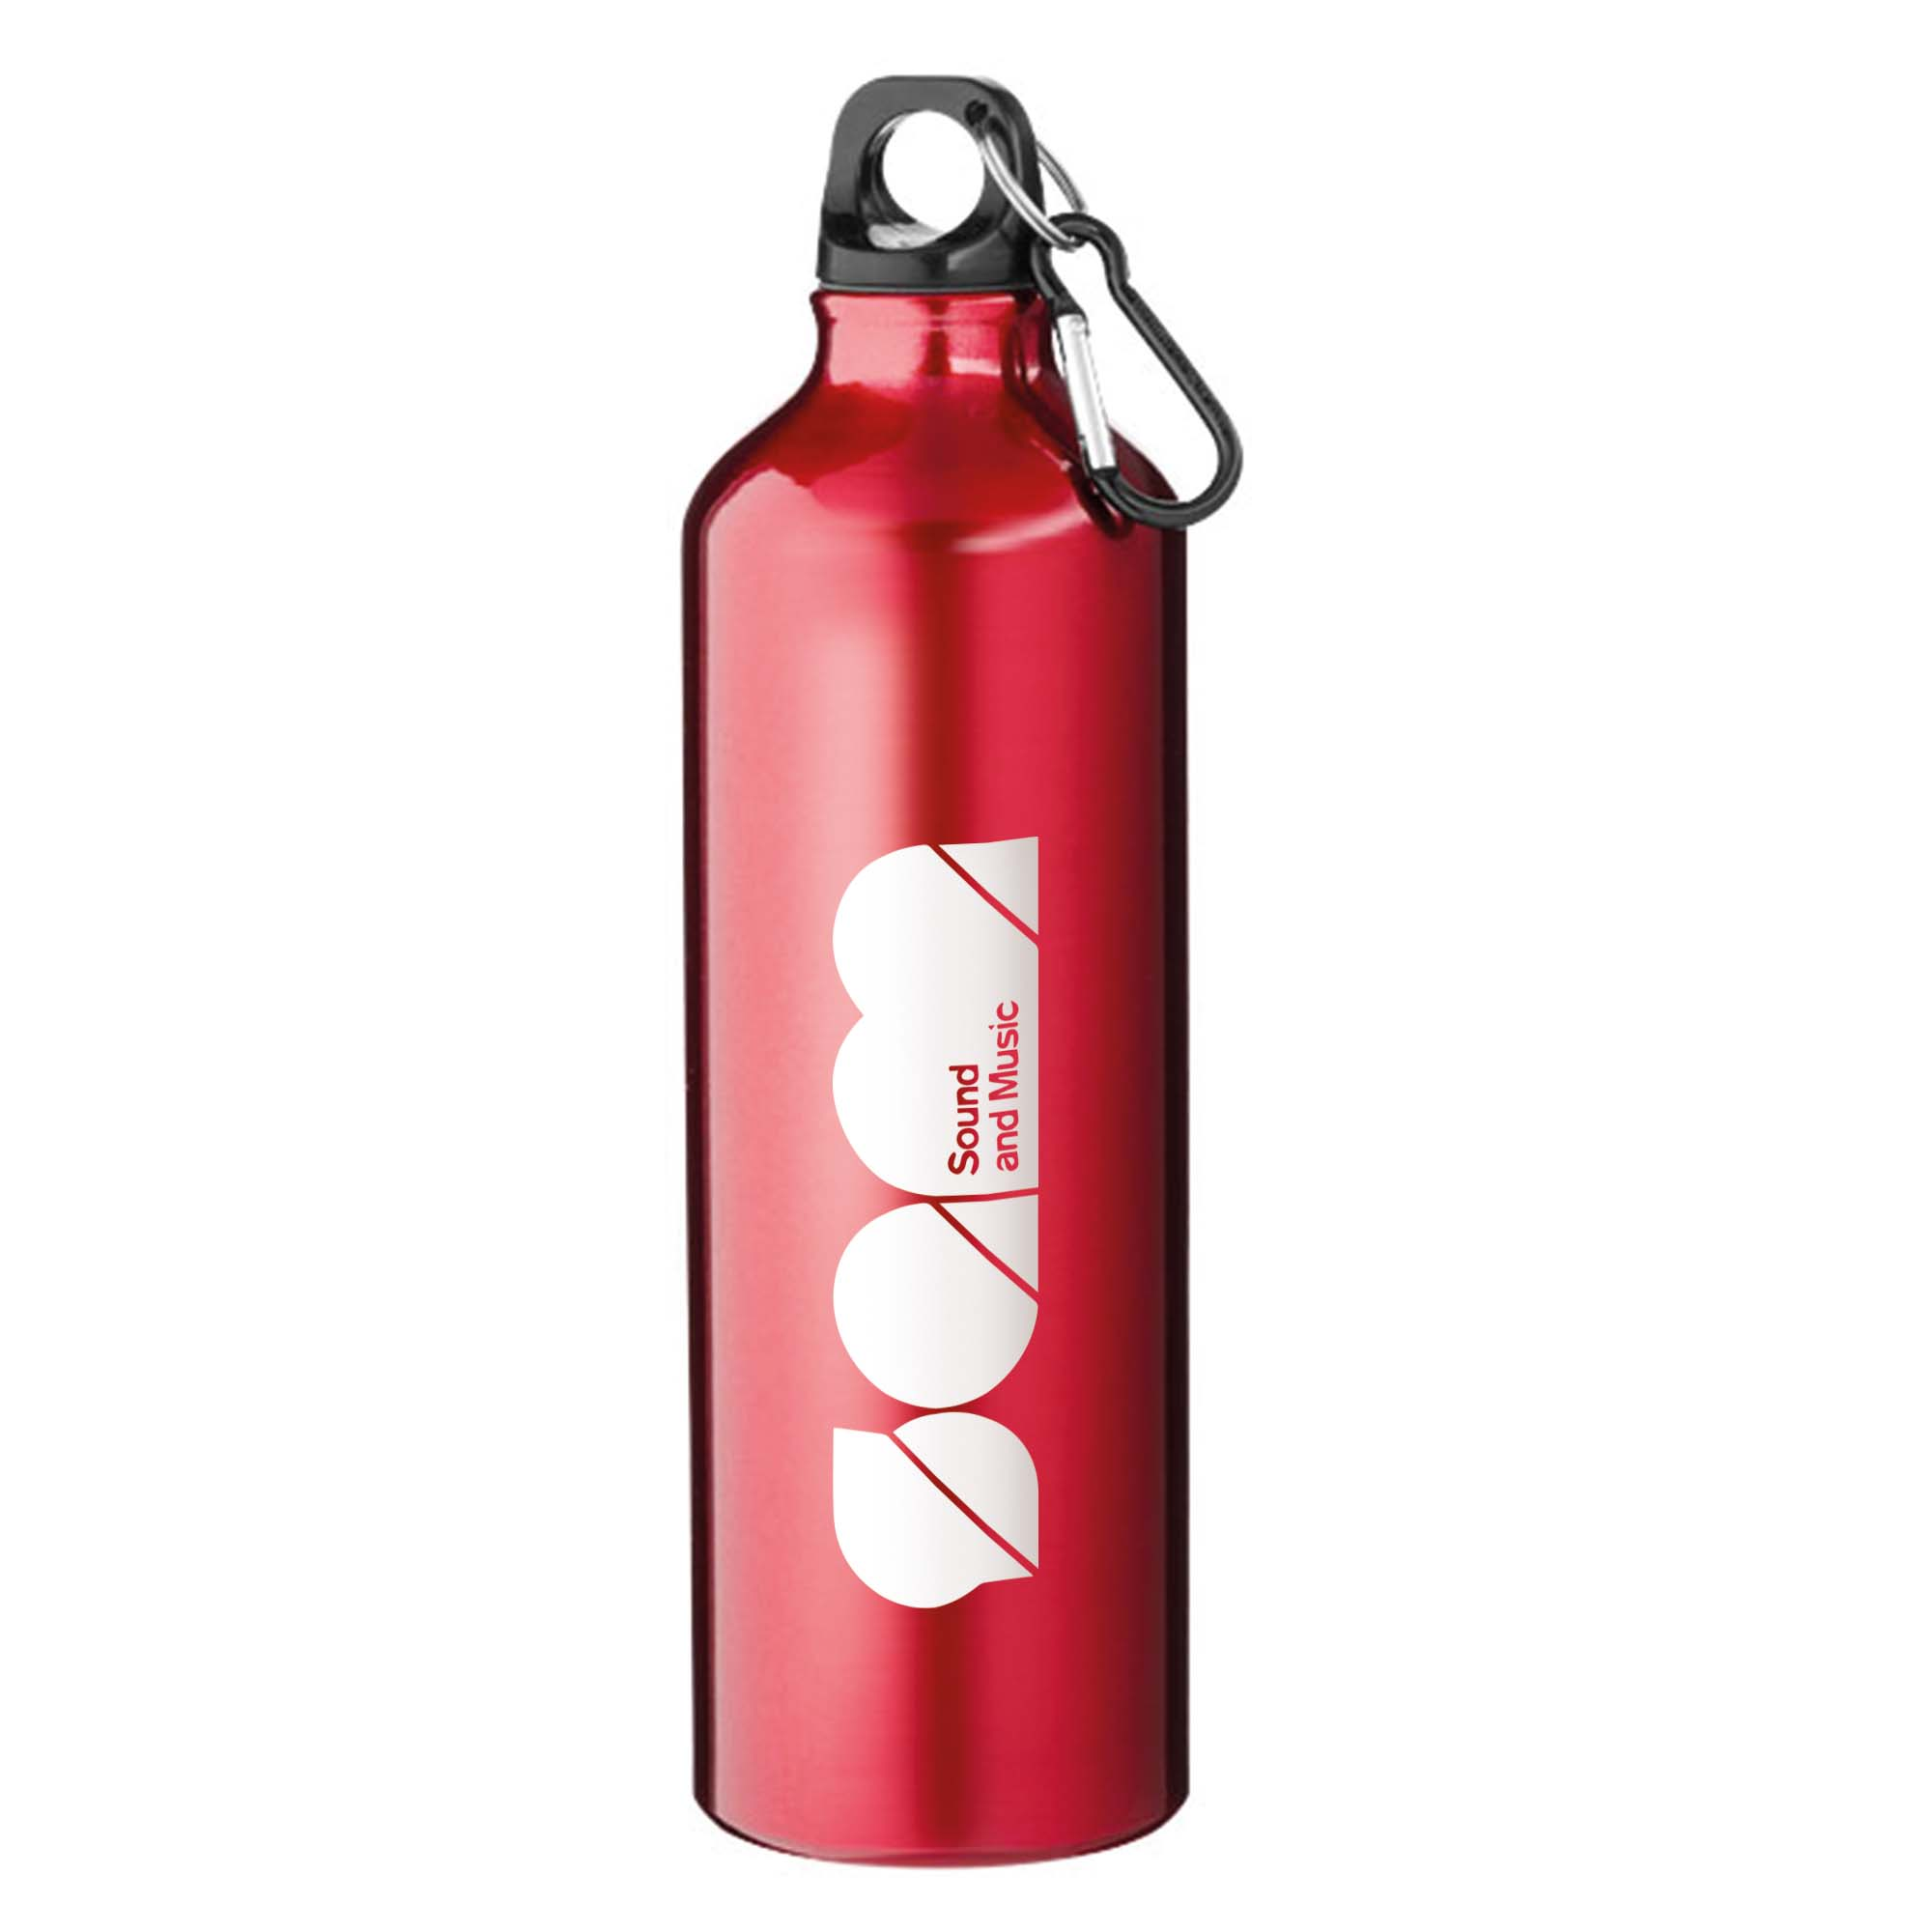 770ml Aluminium Sports Bottle